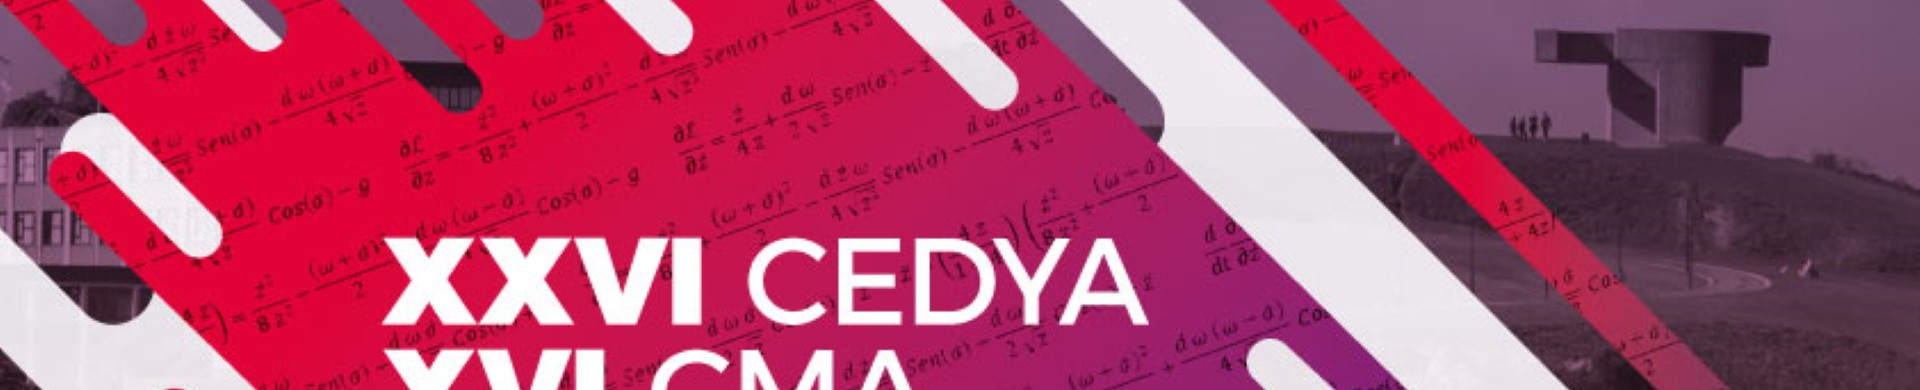 Poster of the CEDYA/CMA